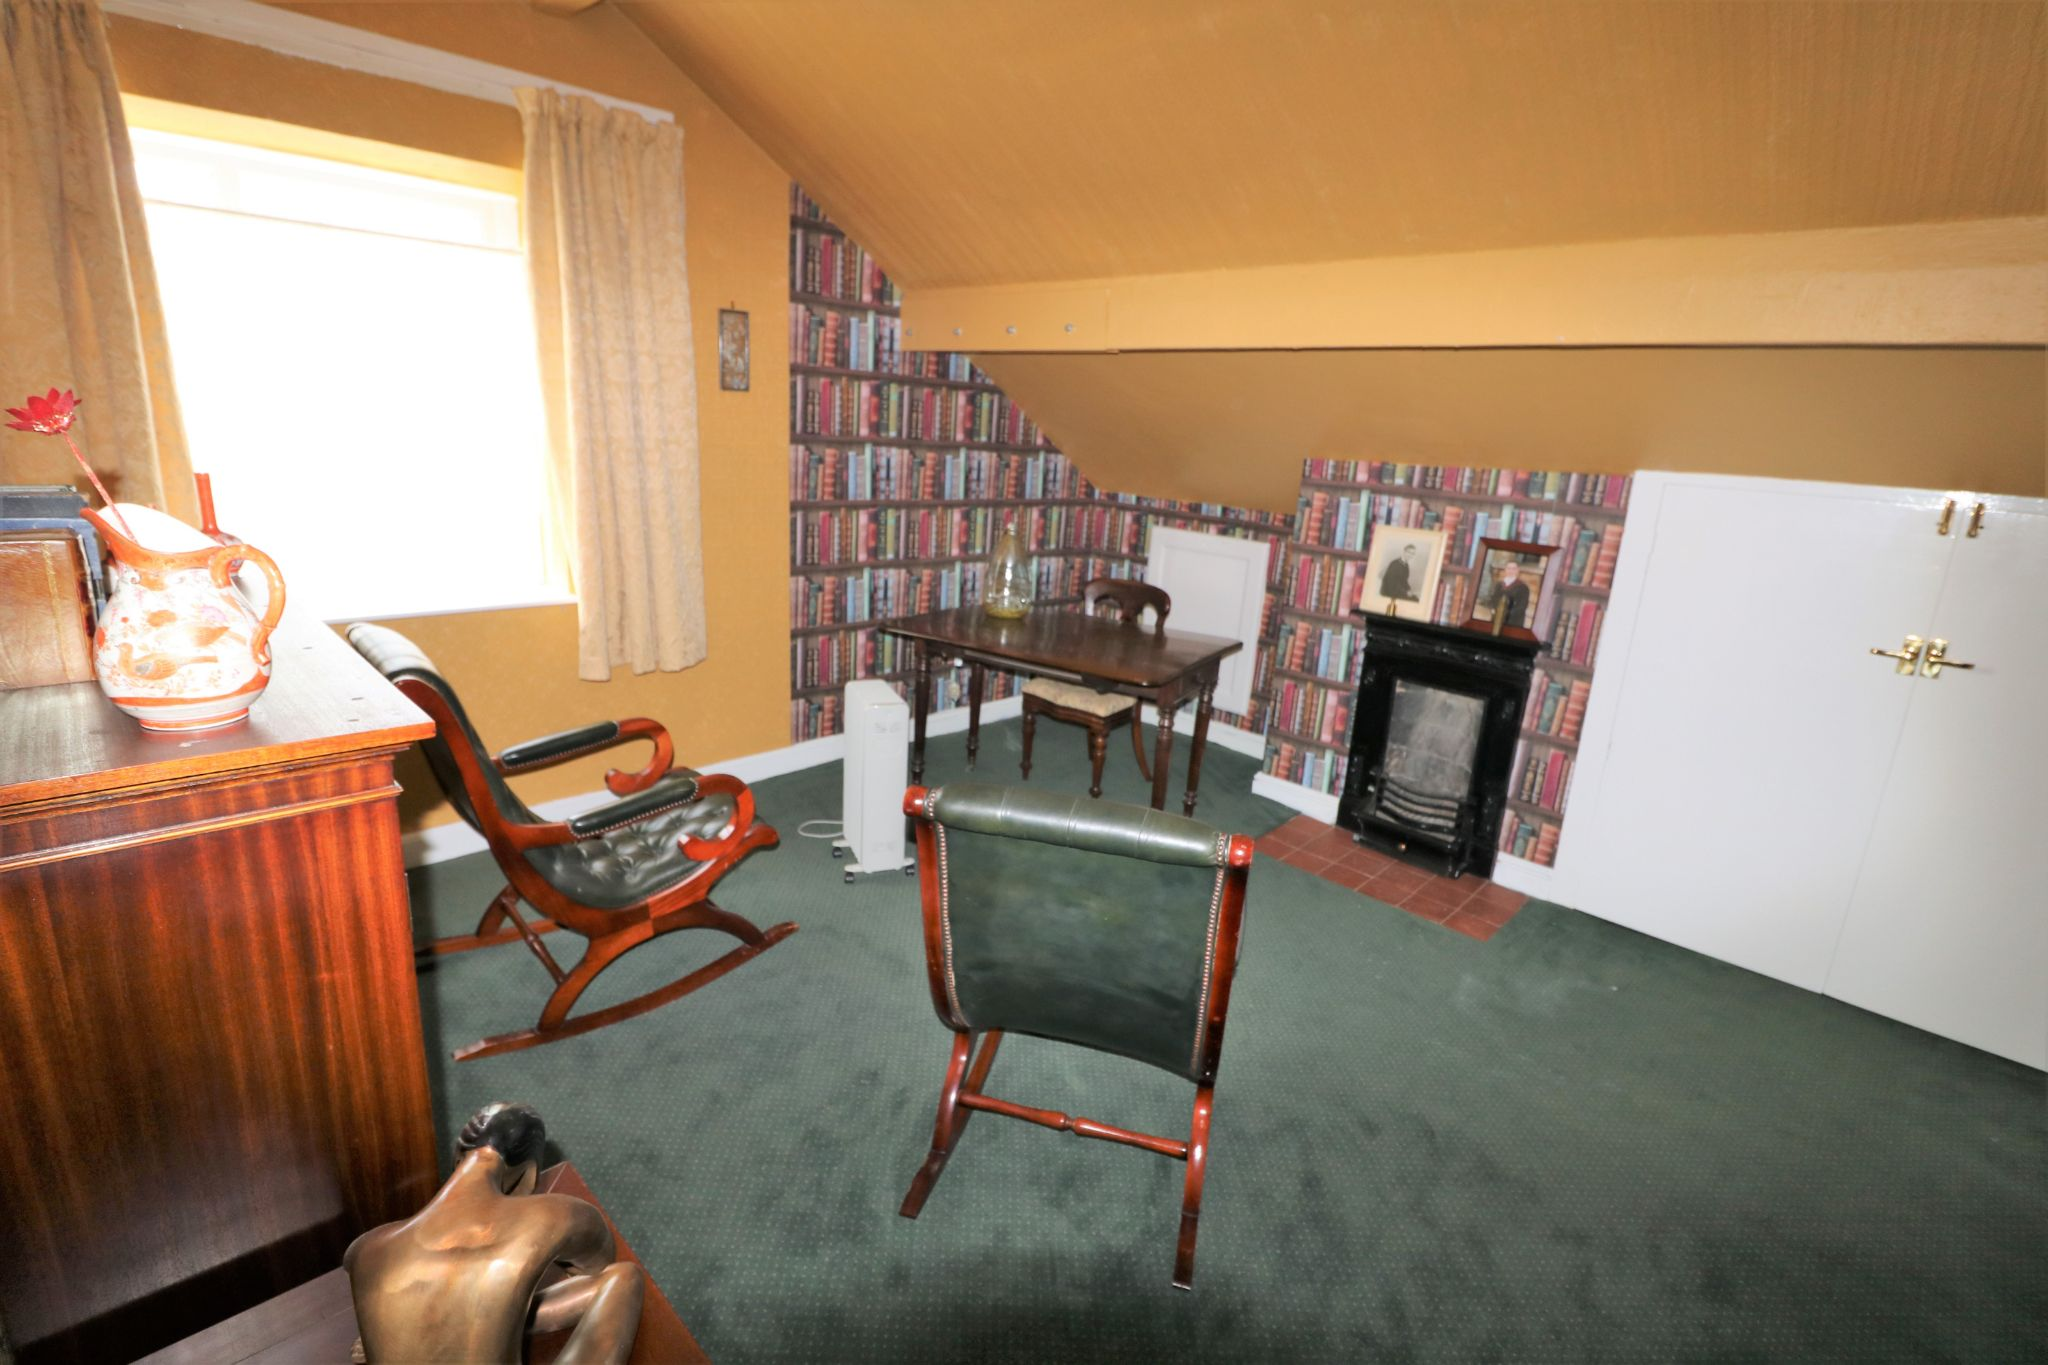 6 Bedroom Semi-detached House For Sale - Photograph 29